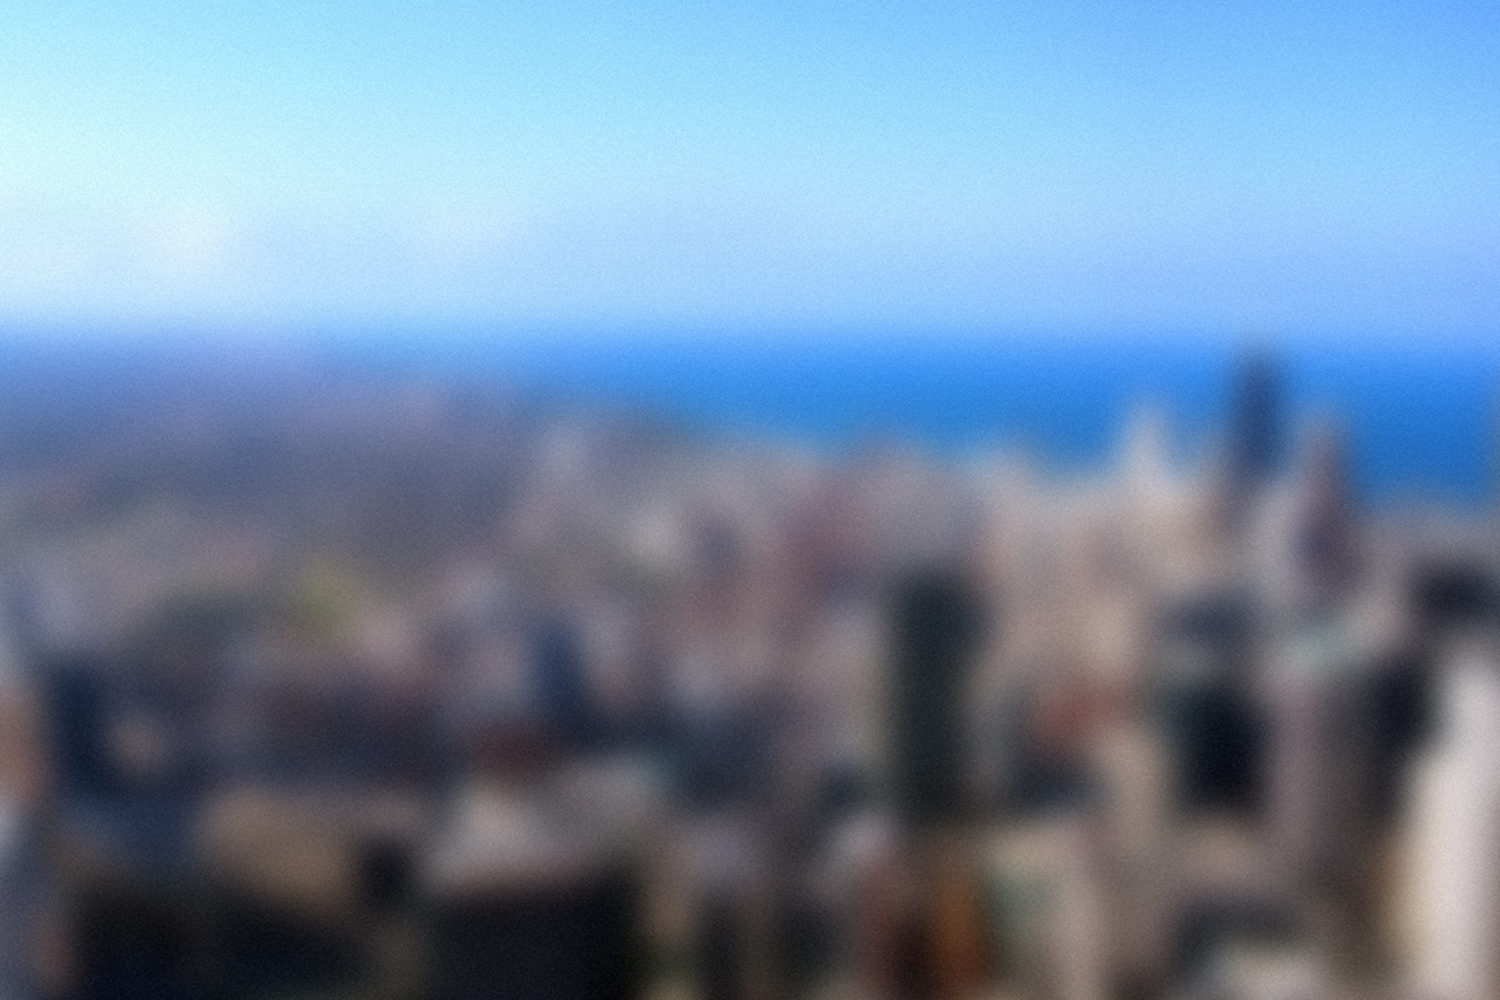 50 Blurred cities example image 3